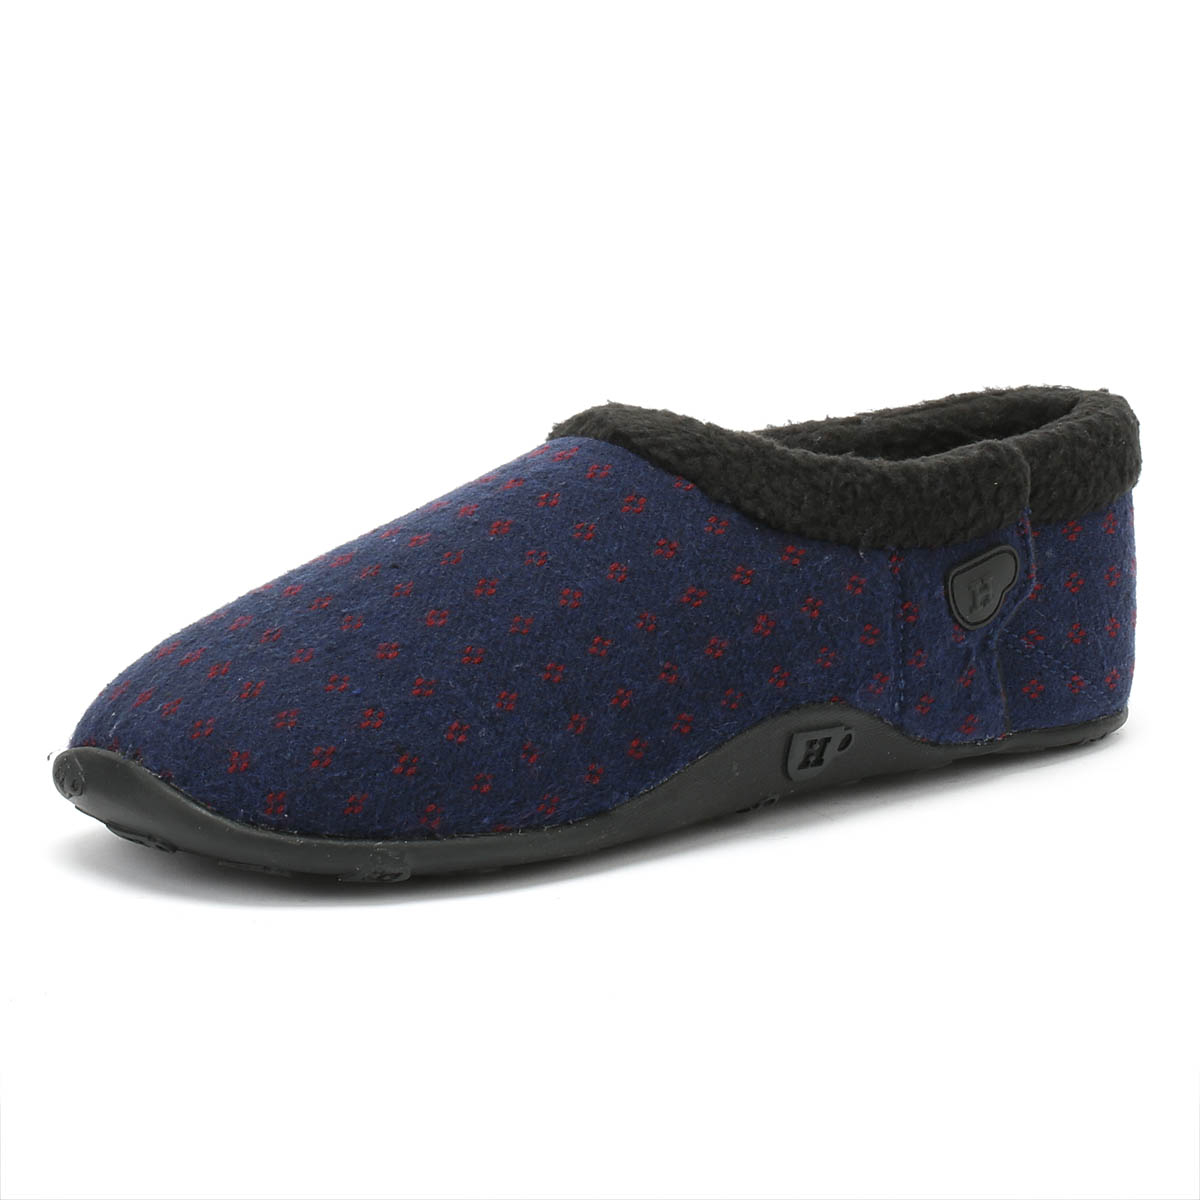 a2987112a Details about Homeys Frankie Mens Navy   Red Dot Slippers Home Shoes